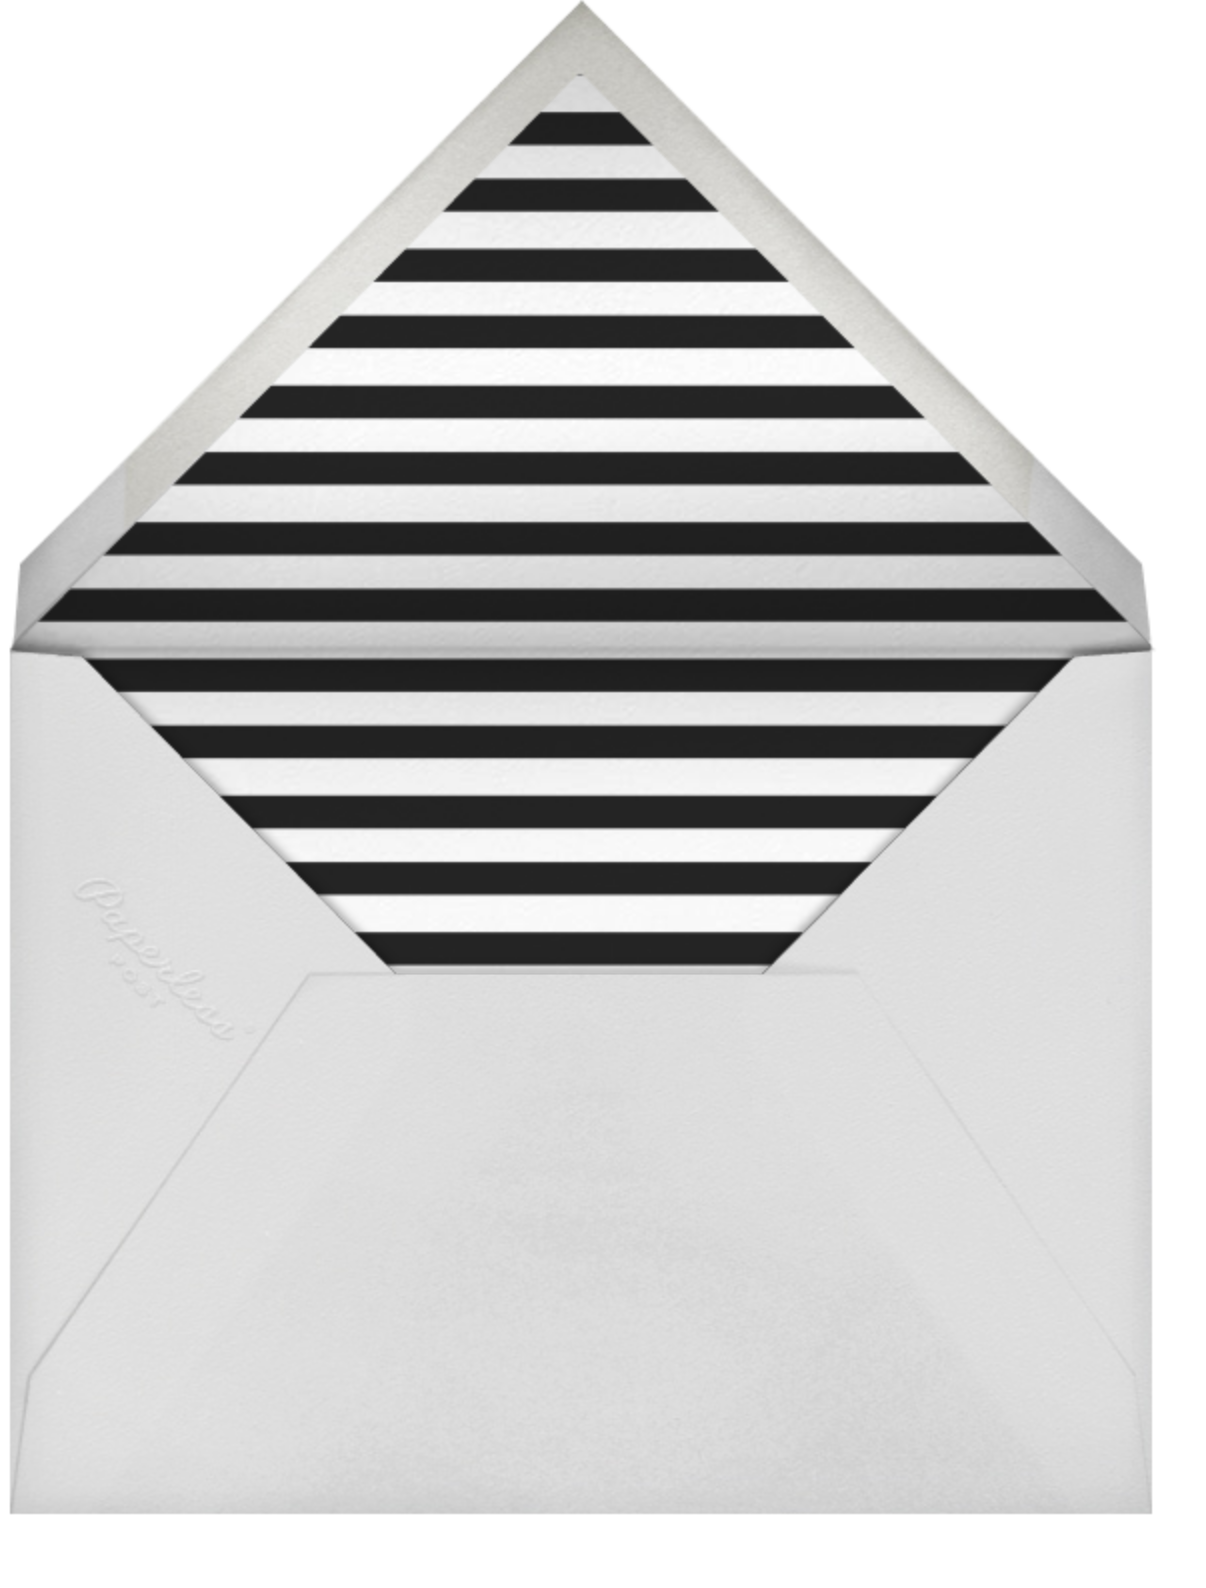 Typographic II (Save the Date) - Gray - kate spade new york - Event save the dates - envelope back